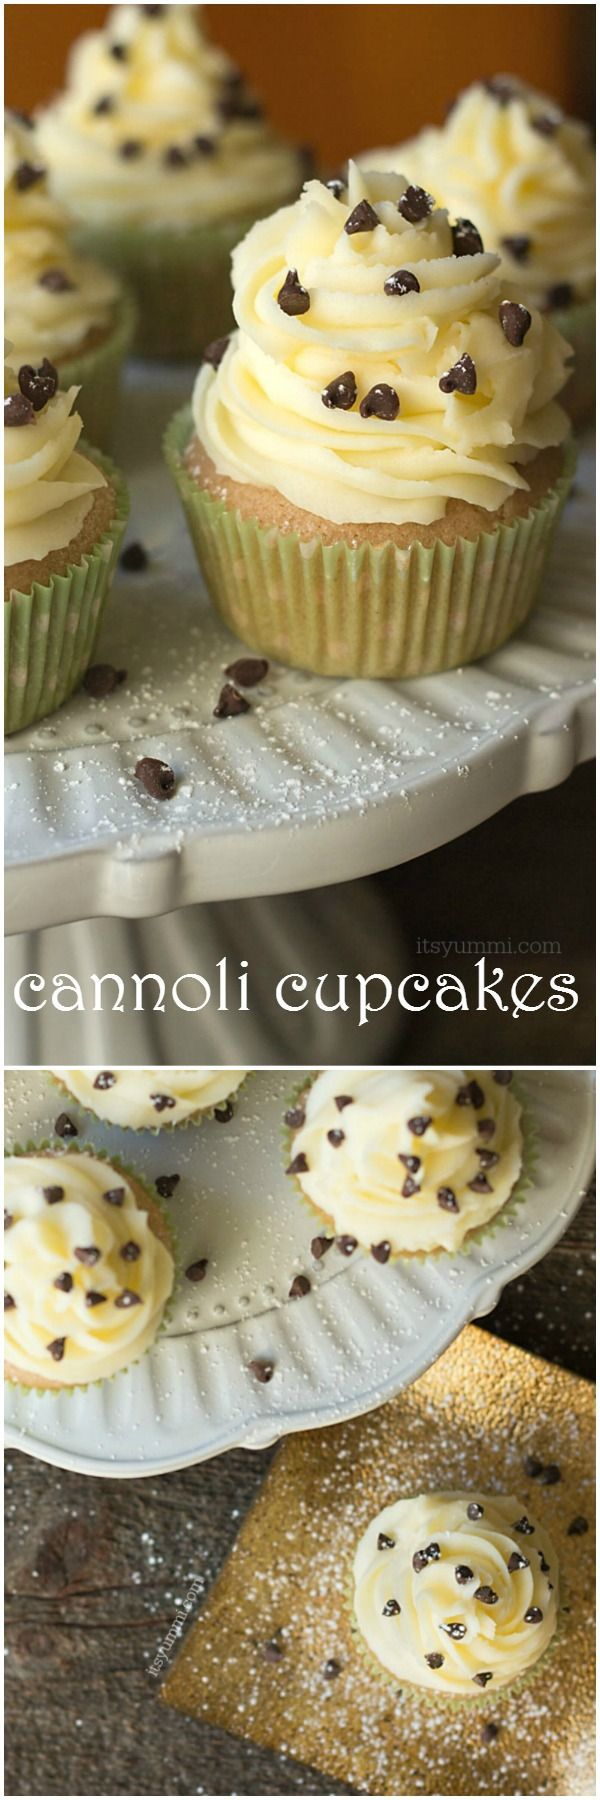 Cannoli cupcakes are inspired by the popular Italian dessert. Vanilla cupcakes with mascarpone frosting, chocolate chips and powdered sugar. via @itsyummi